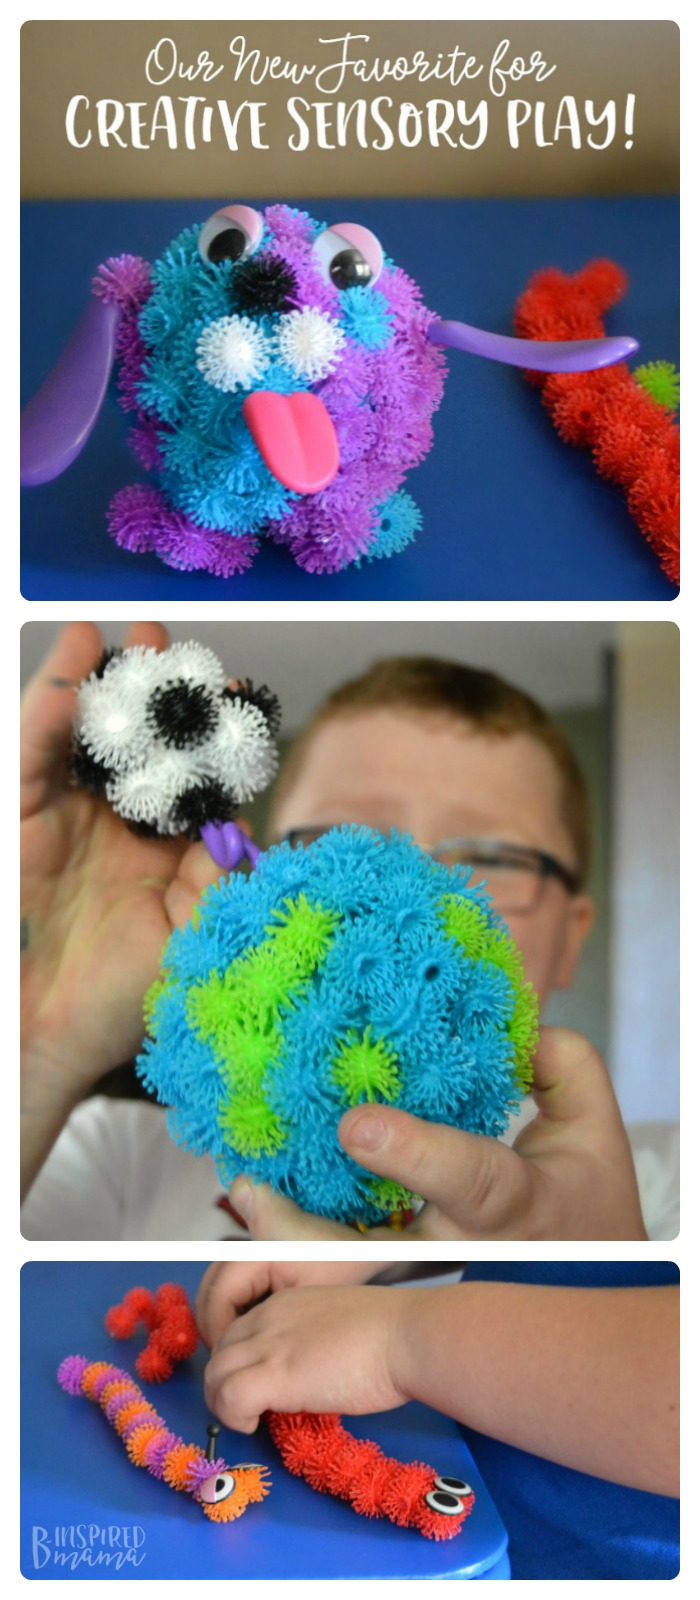 Kids creative play with this new sensory favorite - at B-Inspired Mama